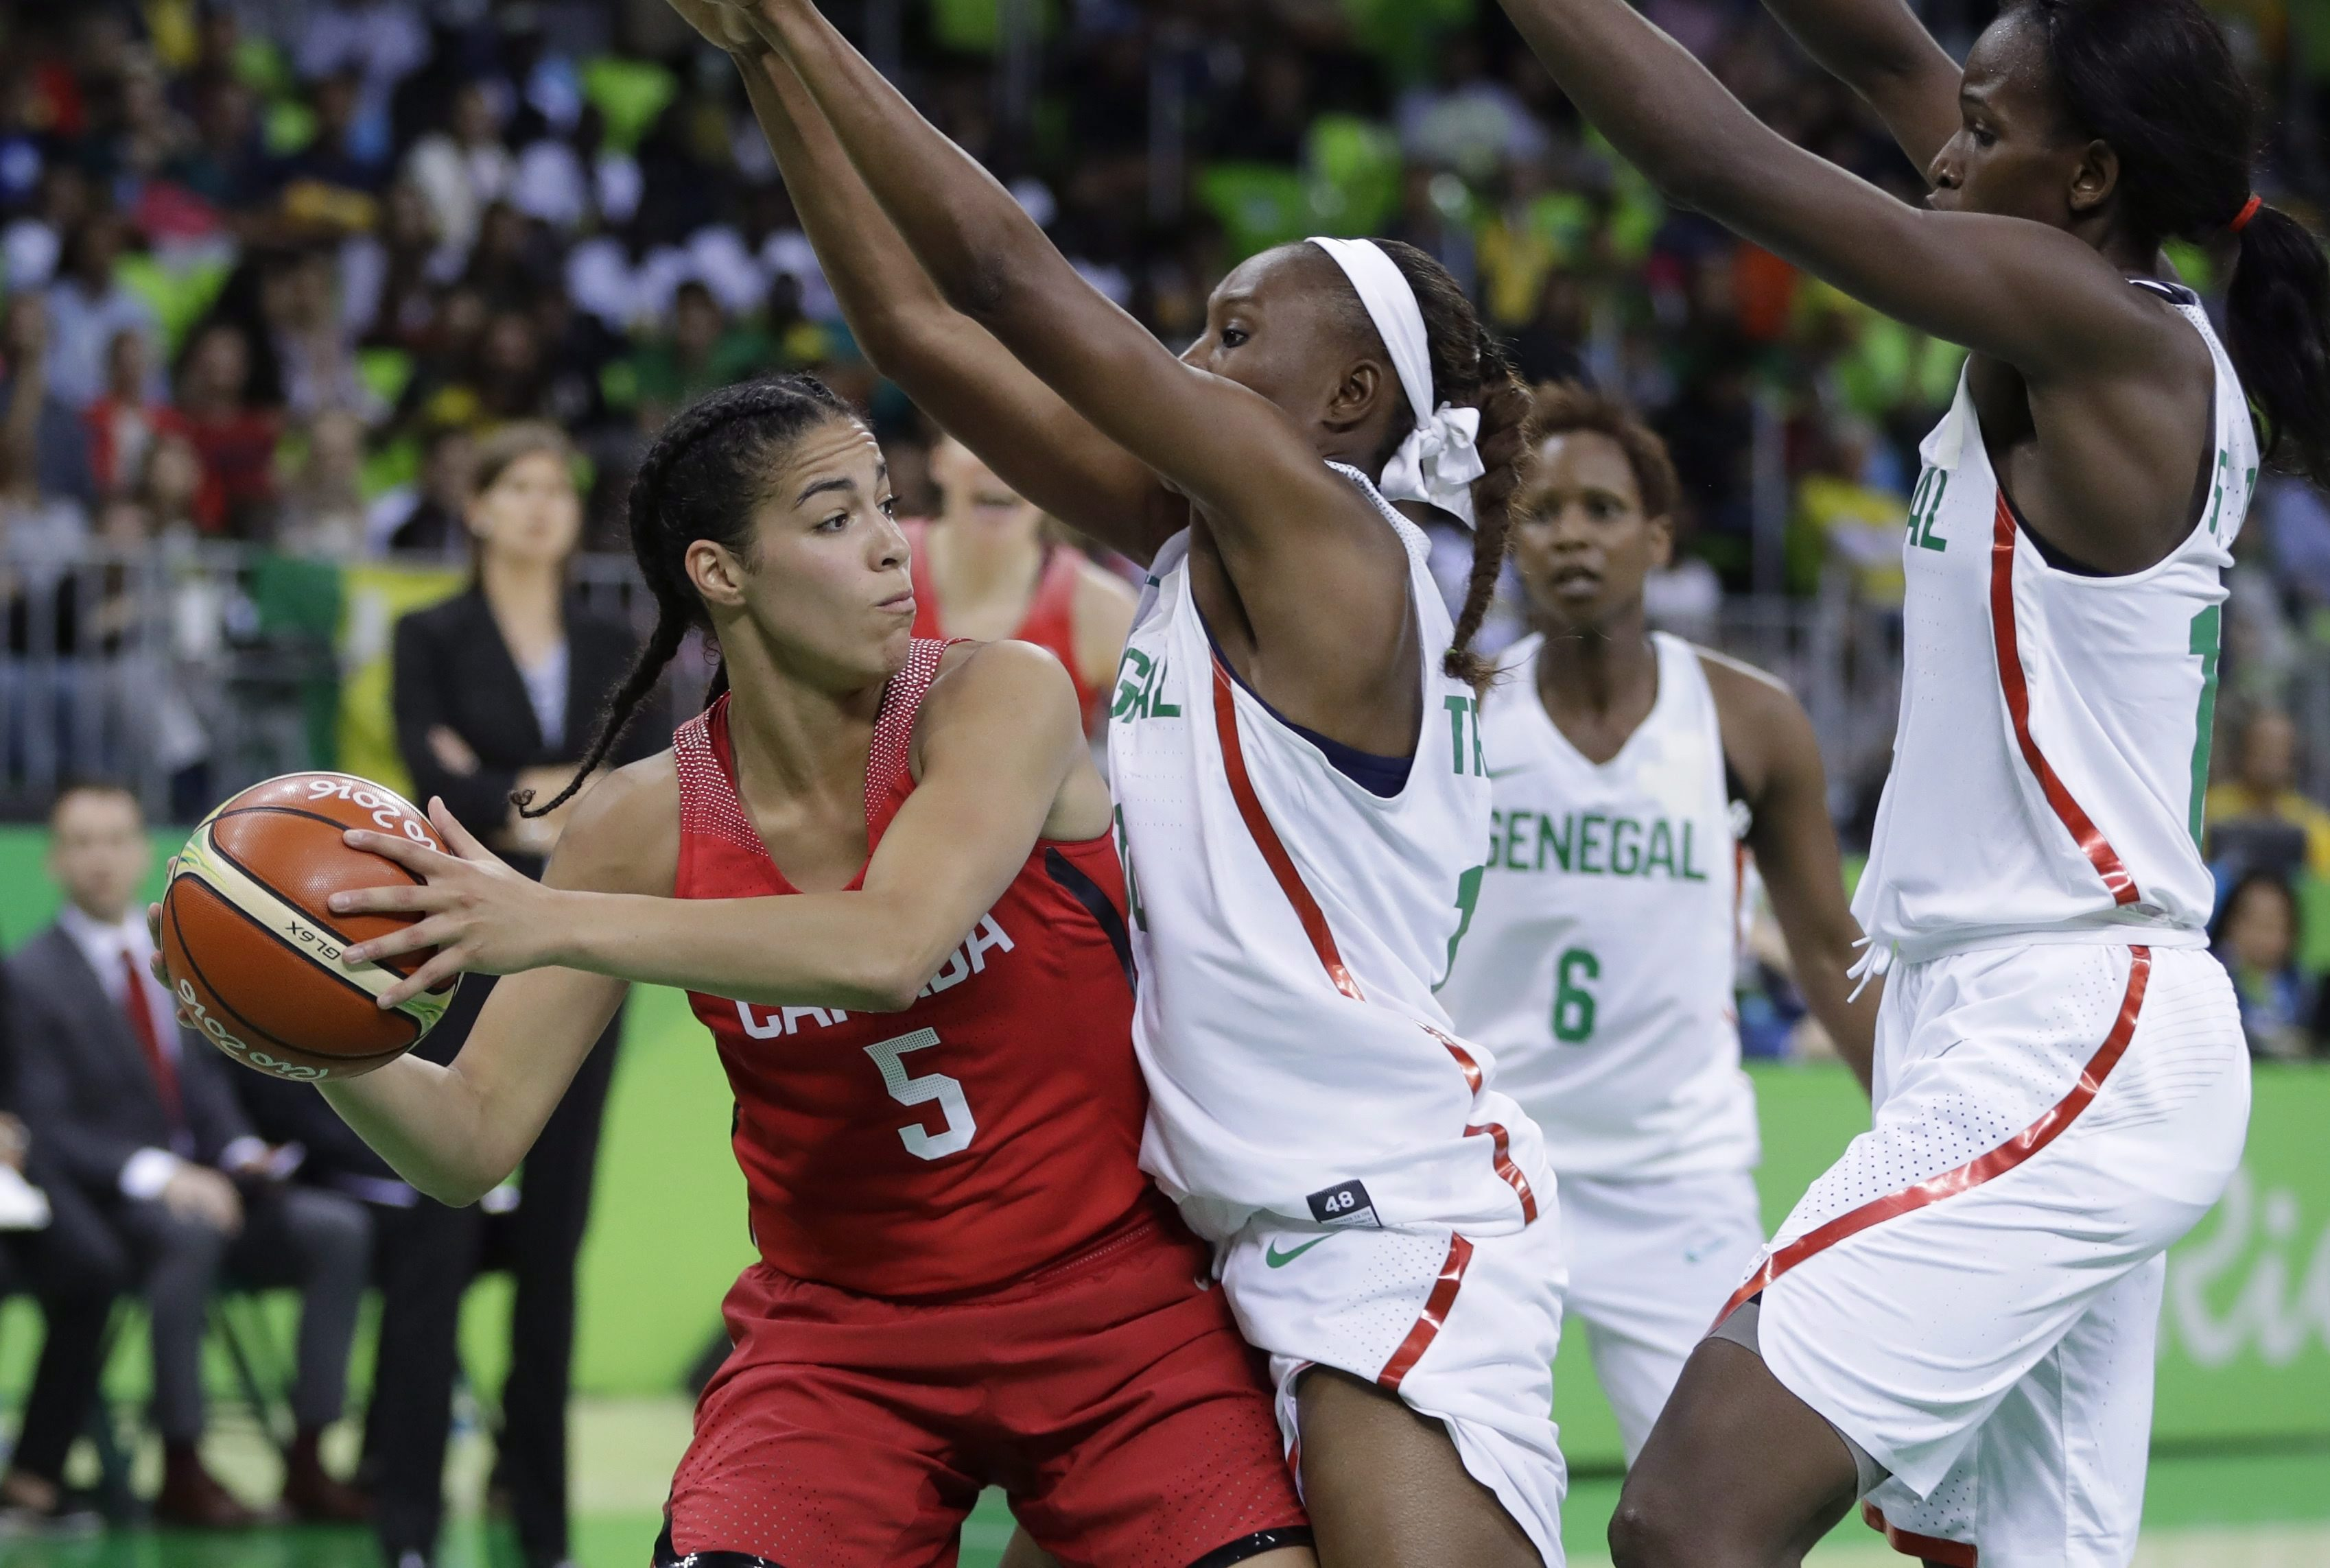 Kia Nurse holds the ball as she tries to get around two members of the Senegal team.